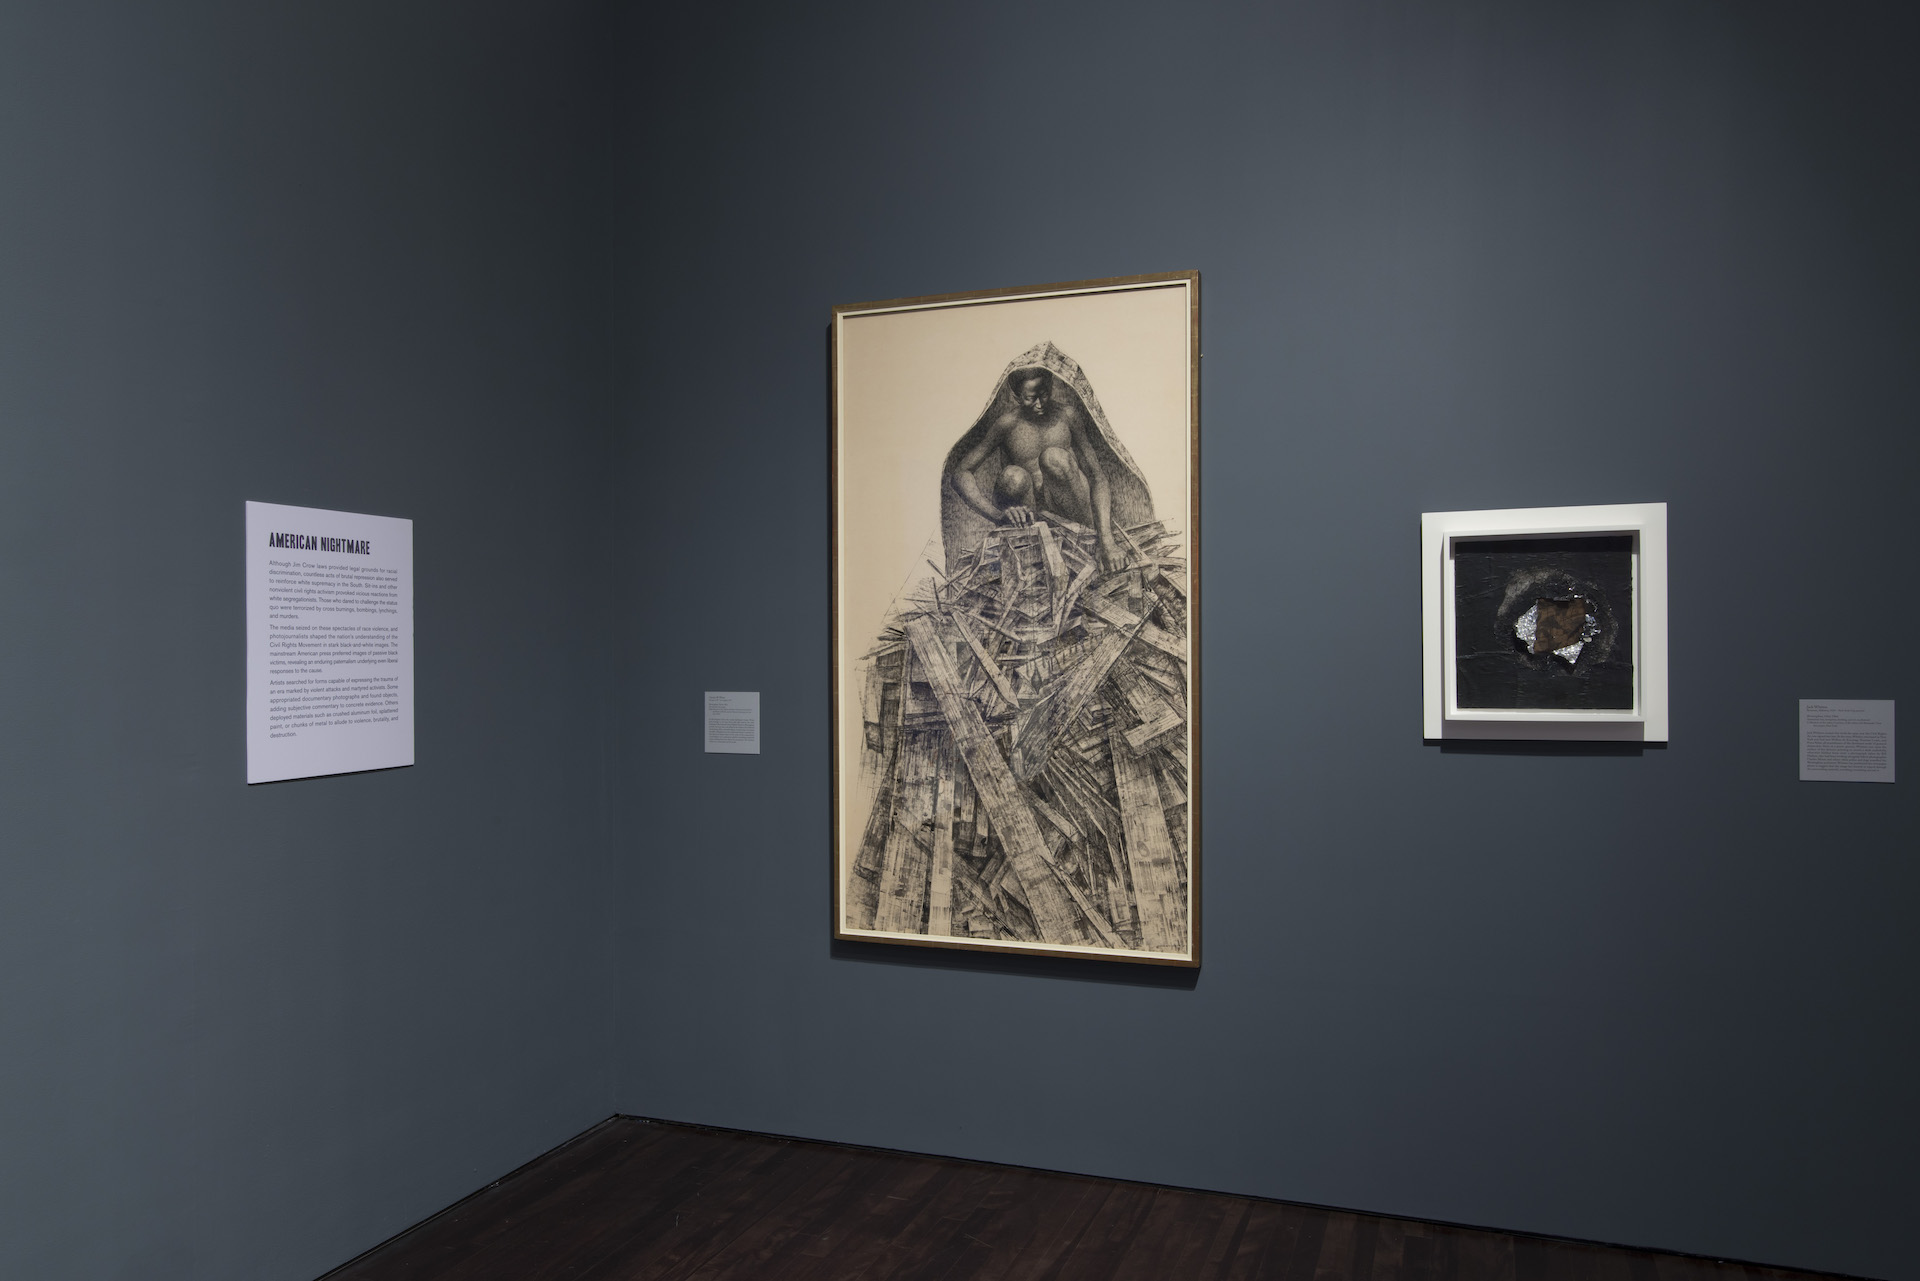 """View of the """"Witness: Art and Civil Rights in the Sixties"""" exhibition at the Blanton Museum of Art, two artworks are hung on the wall"""